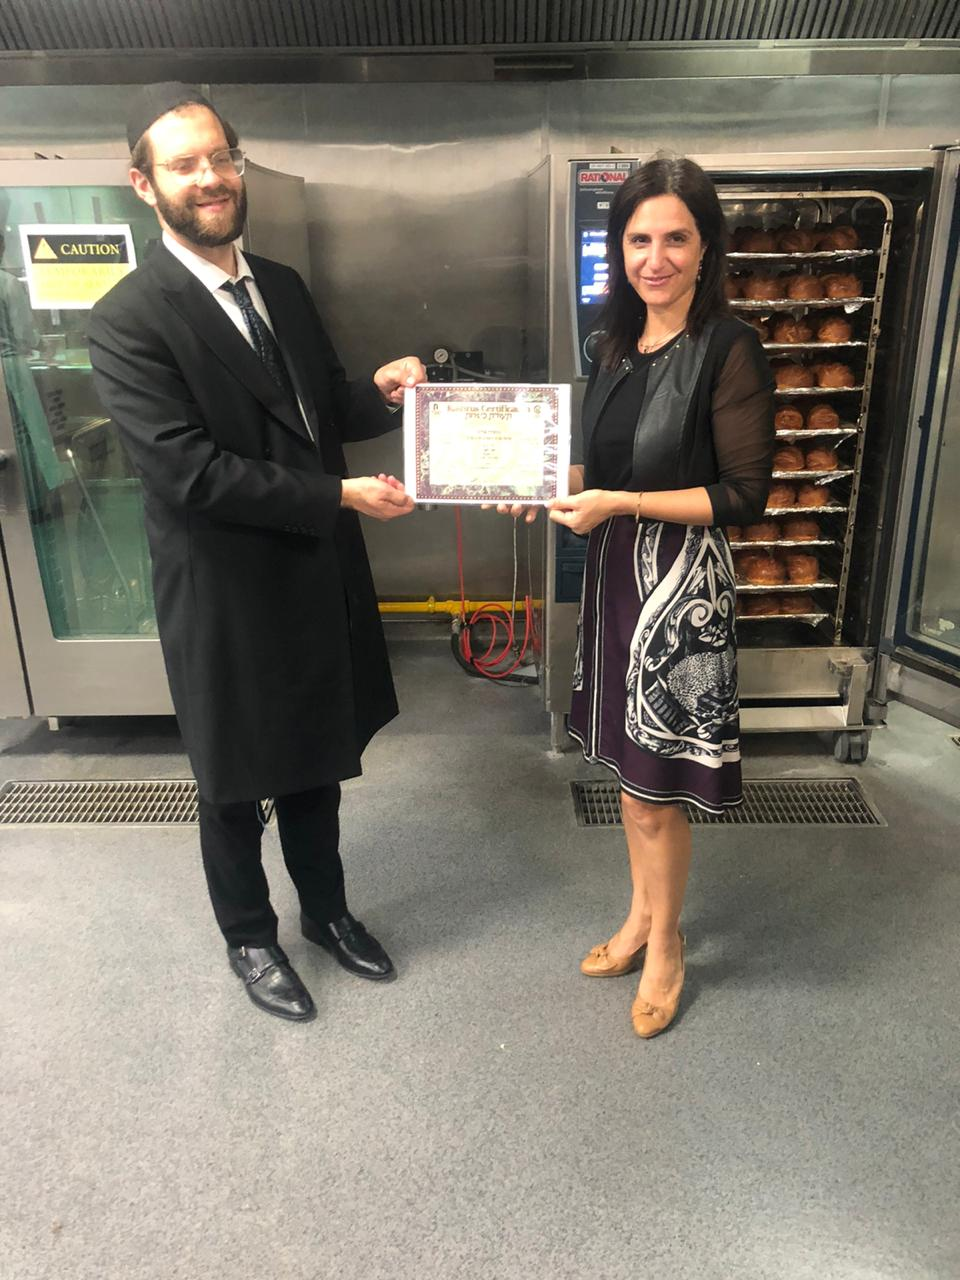 Rabbi Yissachar Krakowski with caterer Elli Kriel in the kitchen holding the kosher certificate for the event. Credit: Ross Kriel.